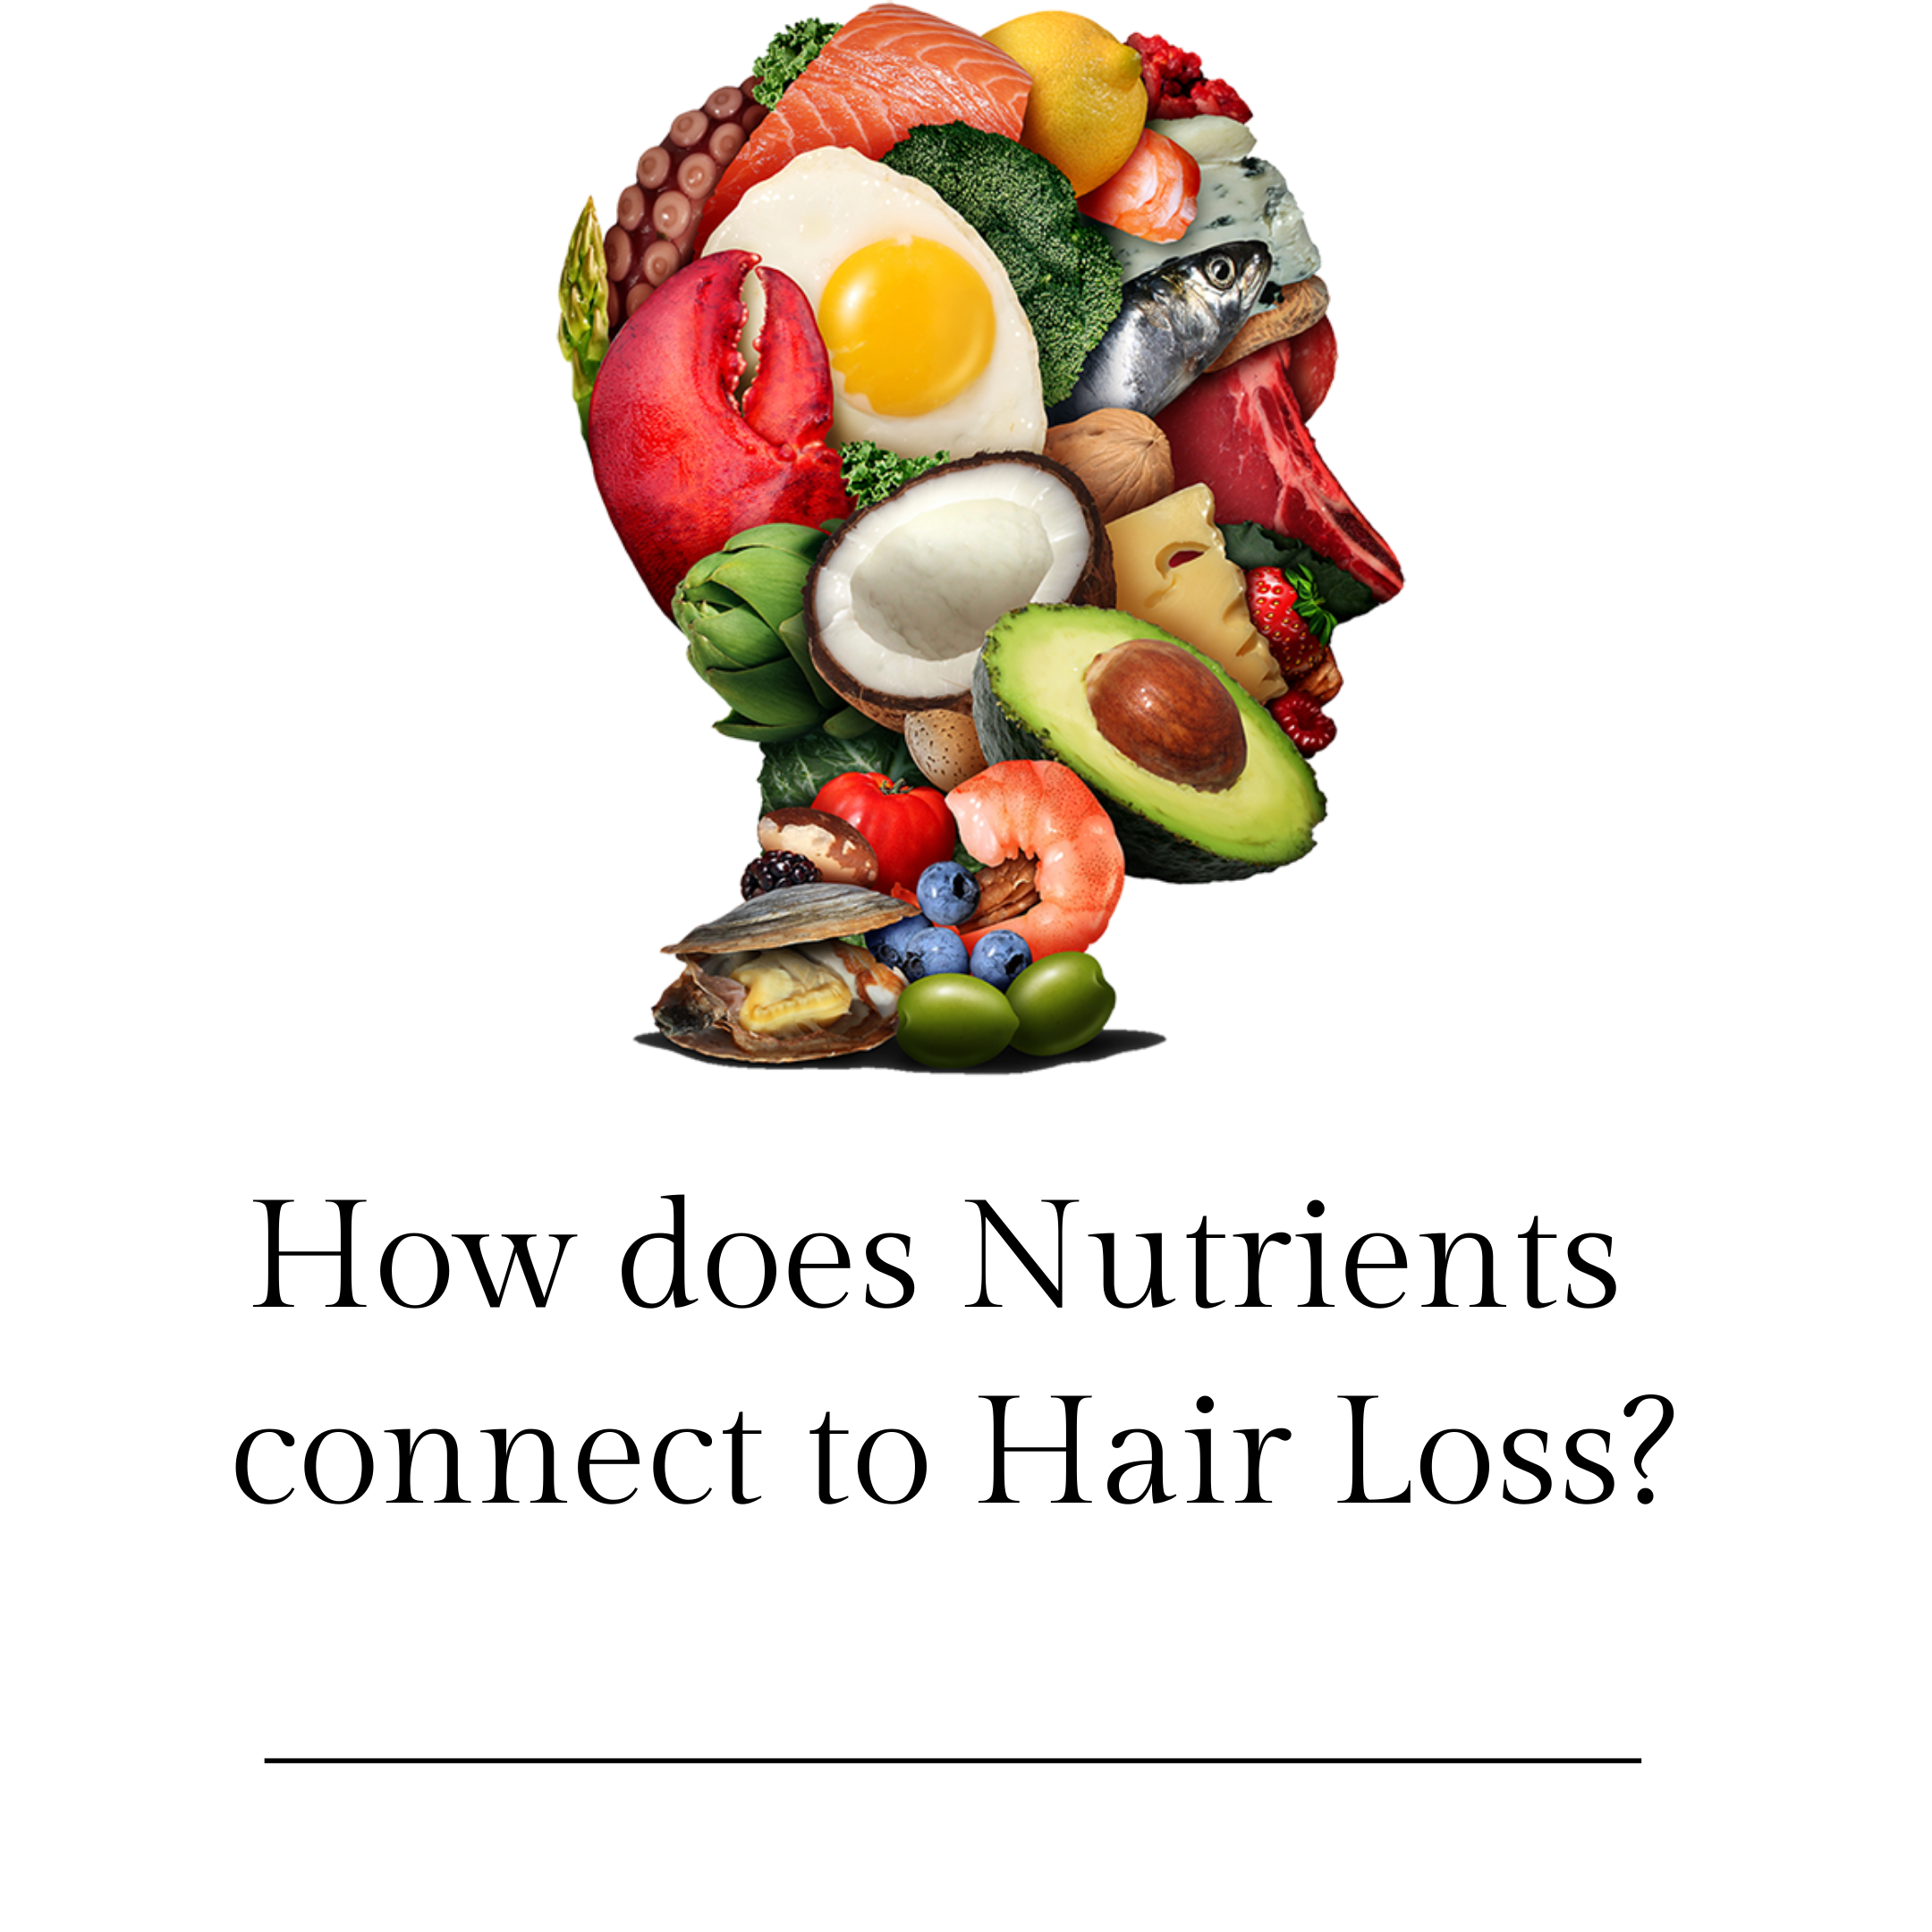 How Does nutrients Connect to Hair Loss?